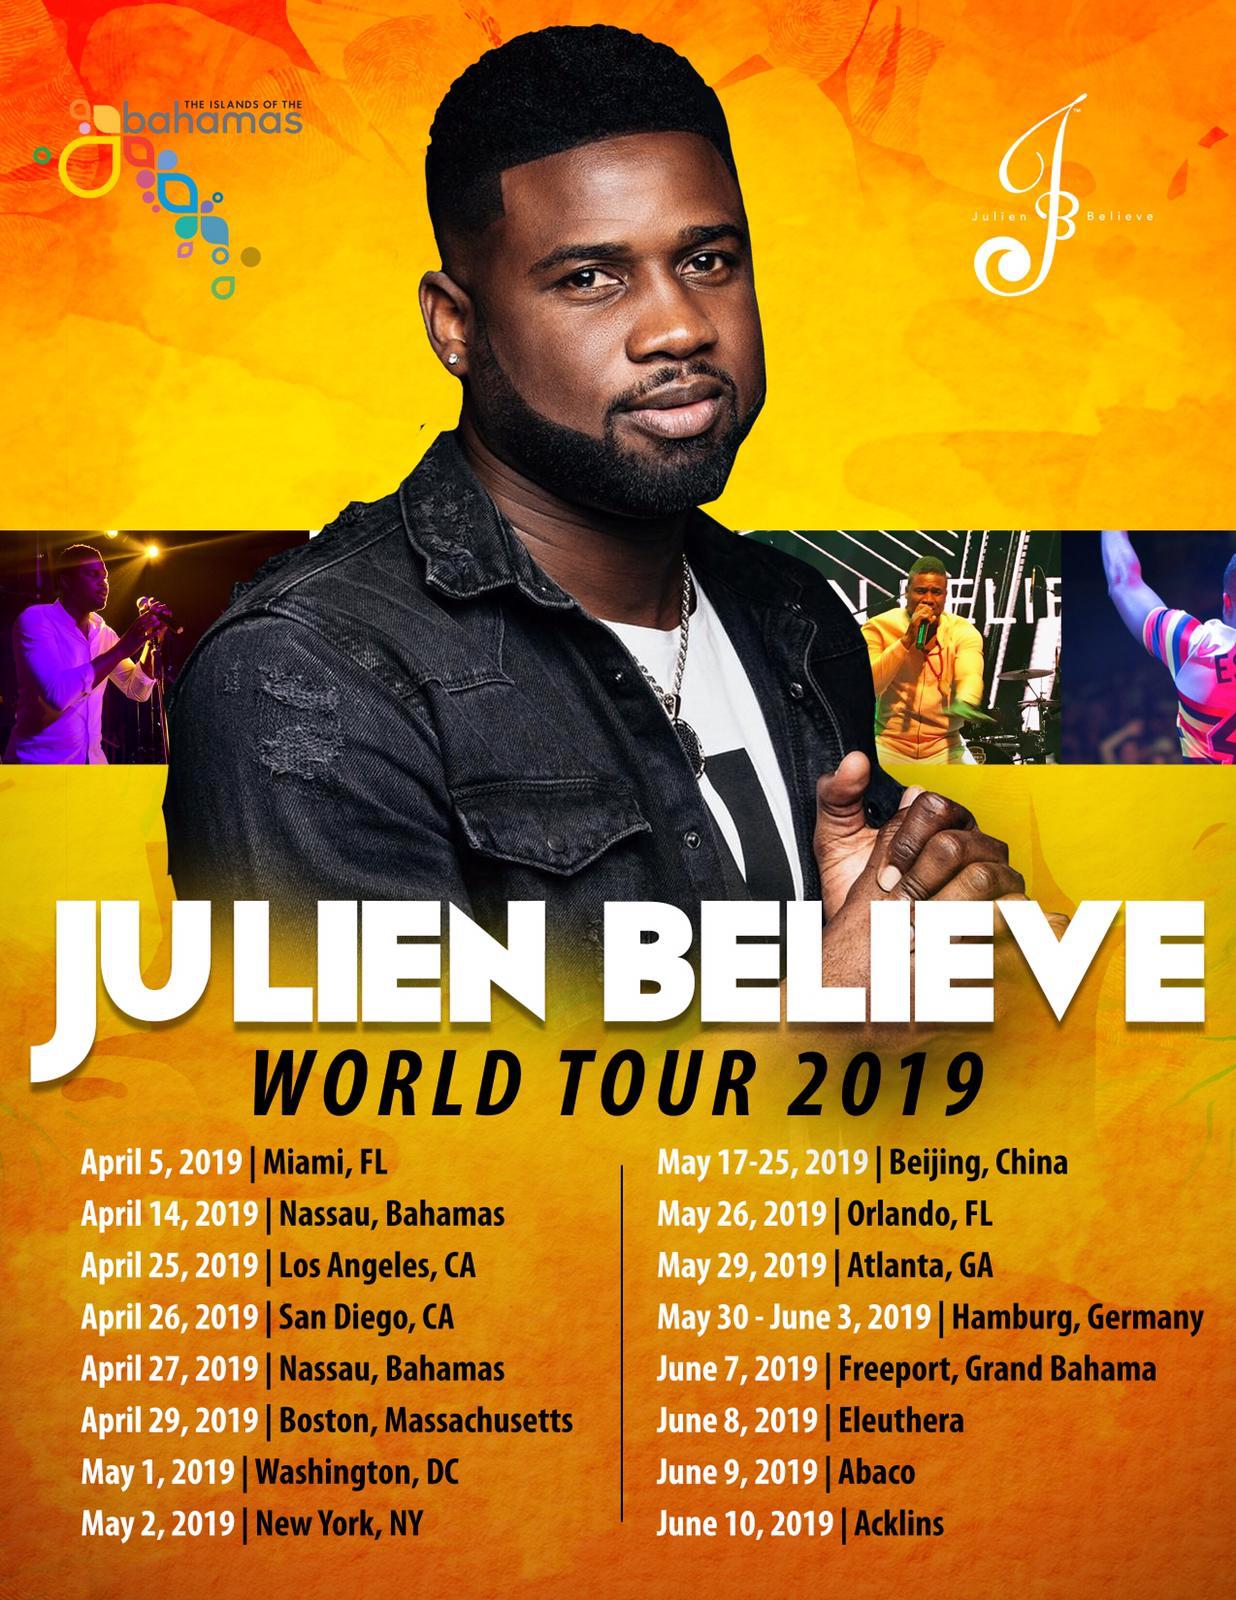 Julien Believe's 2019 world tour covers the US, China, Germany and his beloved Bahamas